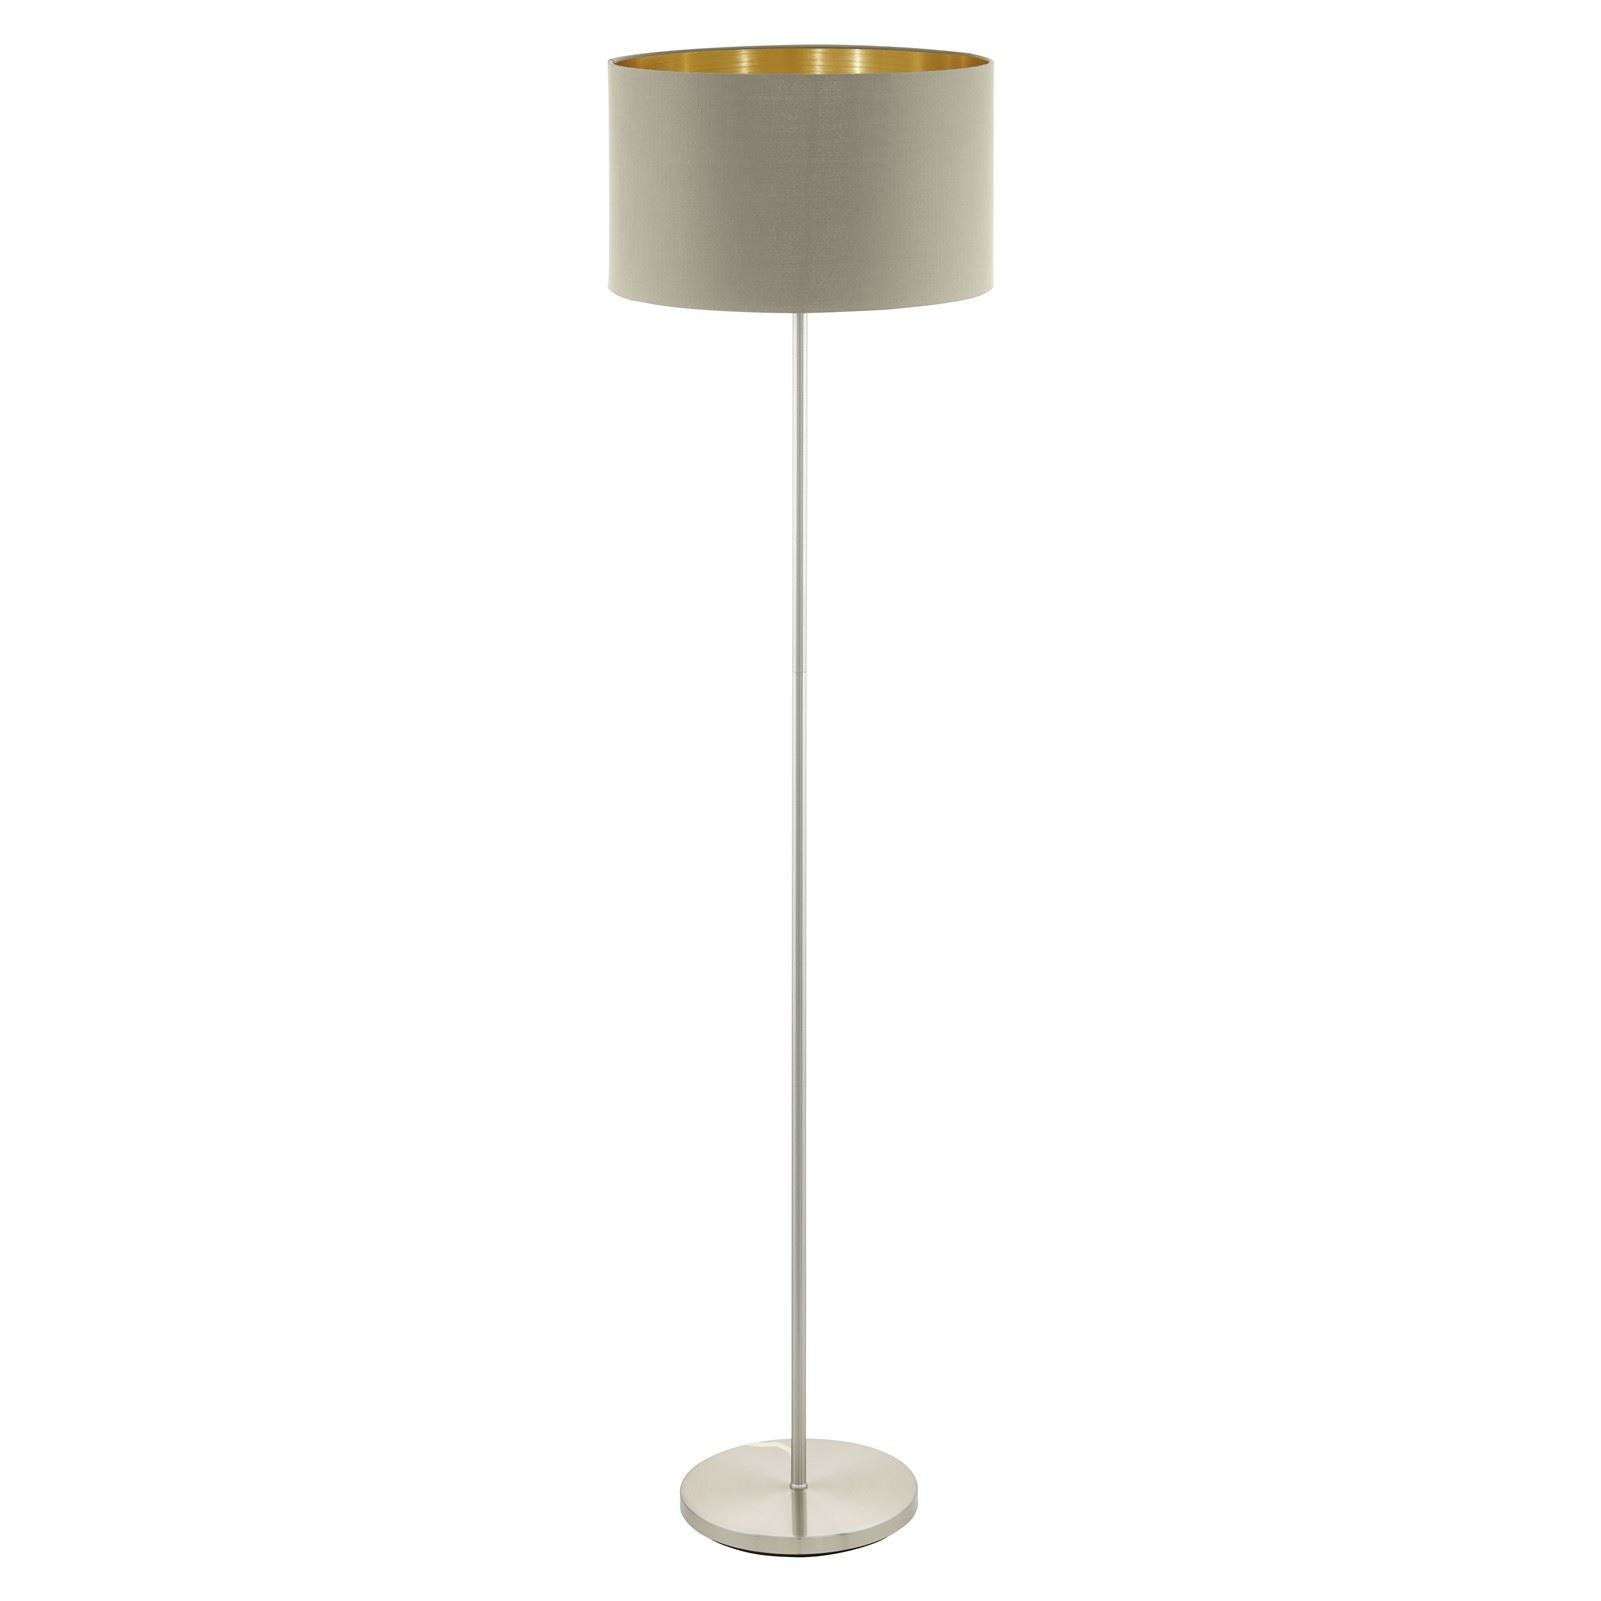 Maserlo Steel Satin Nickel Floor Lamp 1 Light With Taupe-Gold Shade